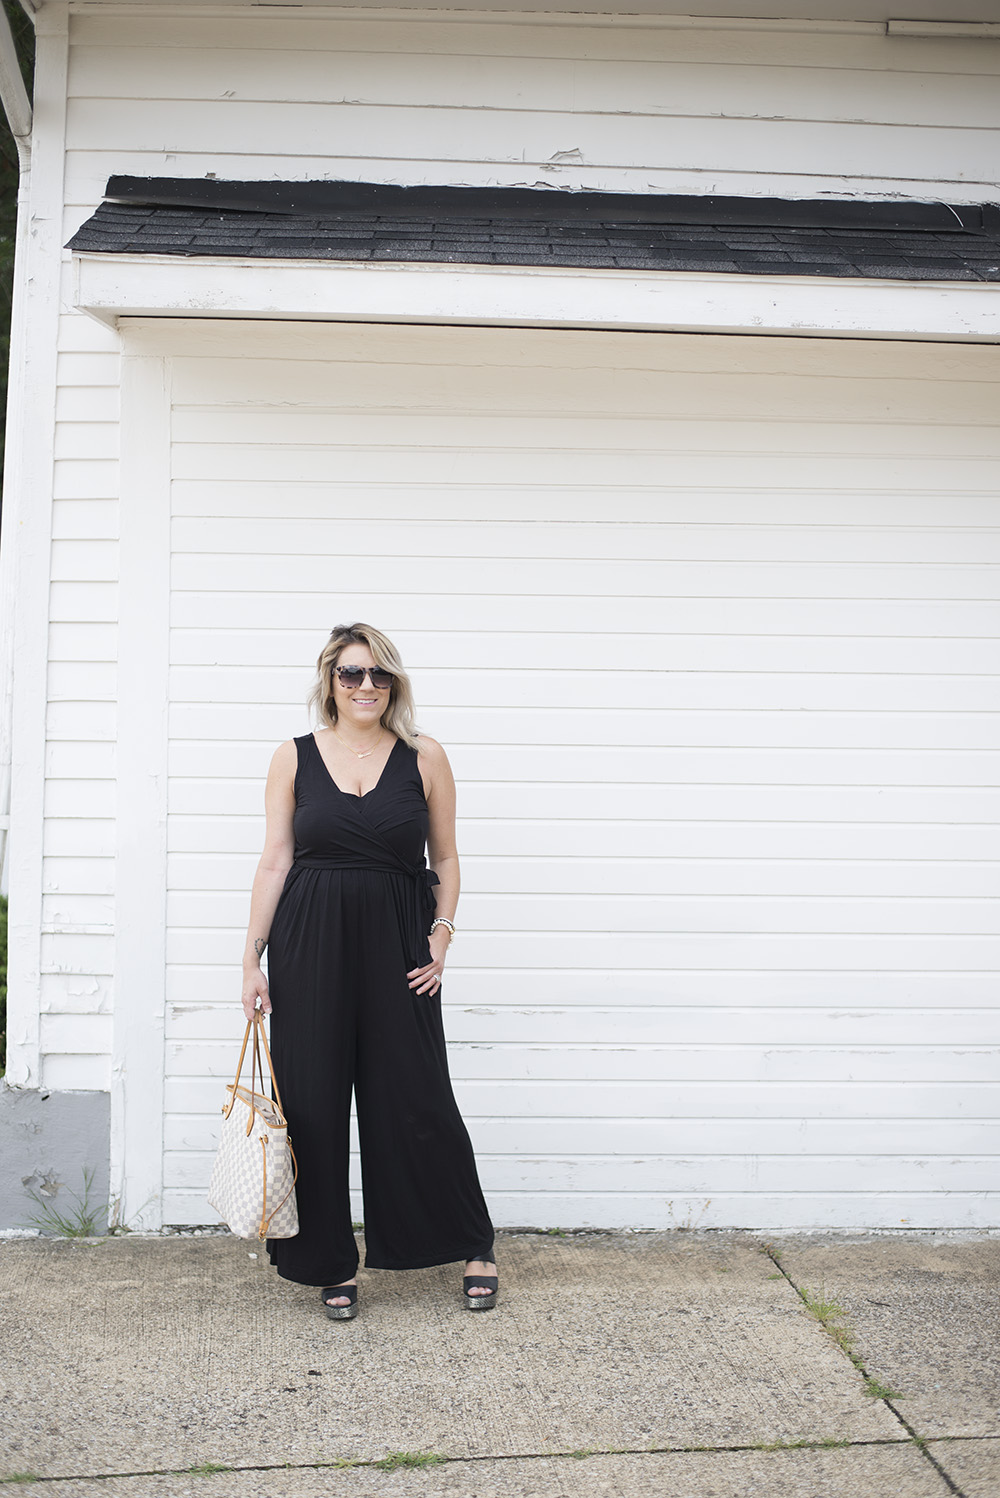 Cleveland blogger The Samantha Show shares tips for dressing your postpartum body. This nursing jumpsuit is perfect for comfort and function!